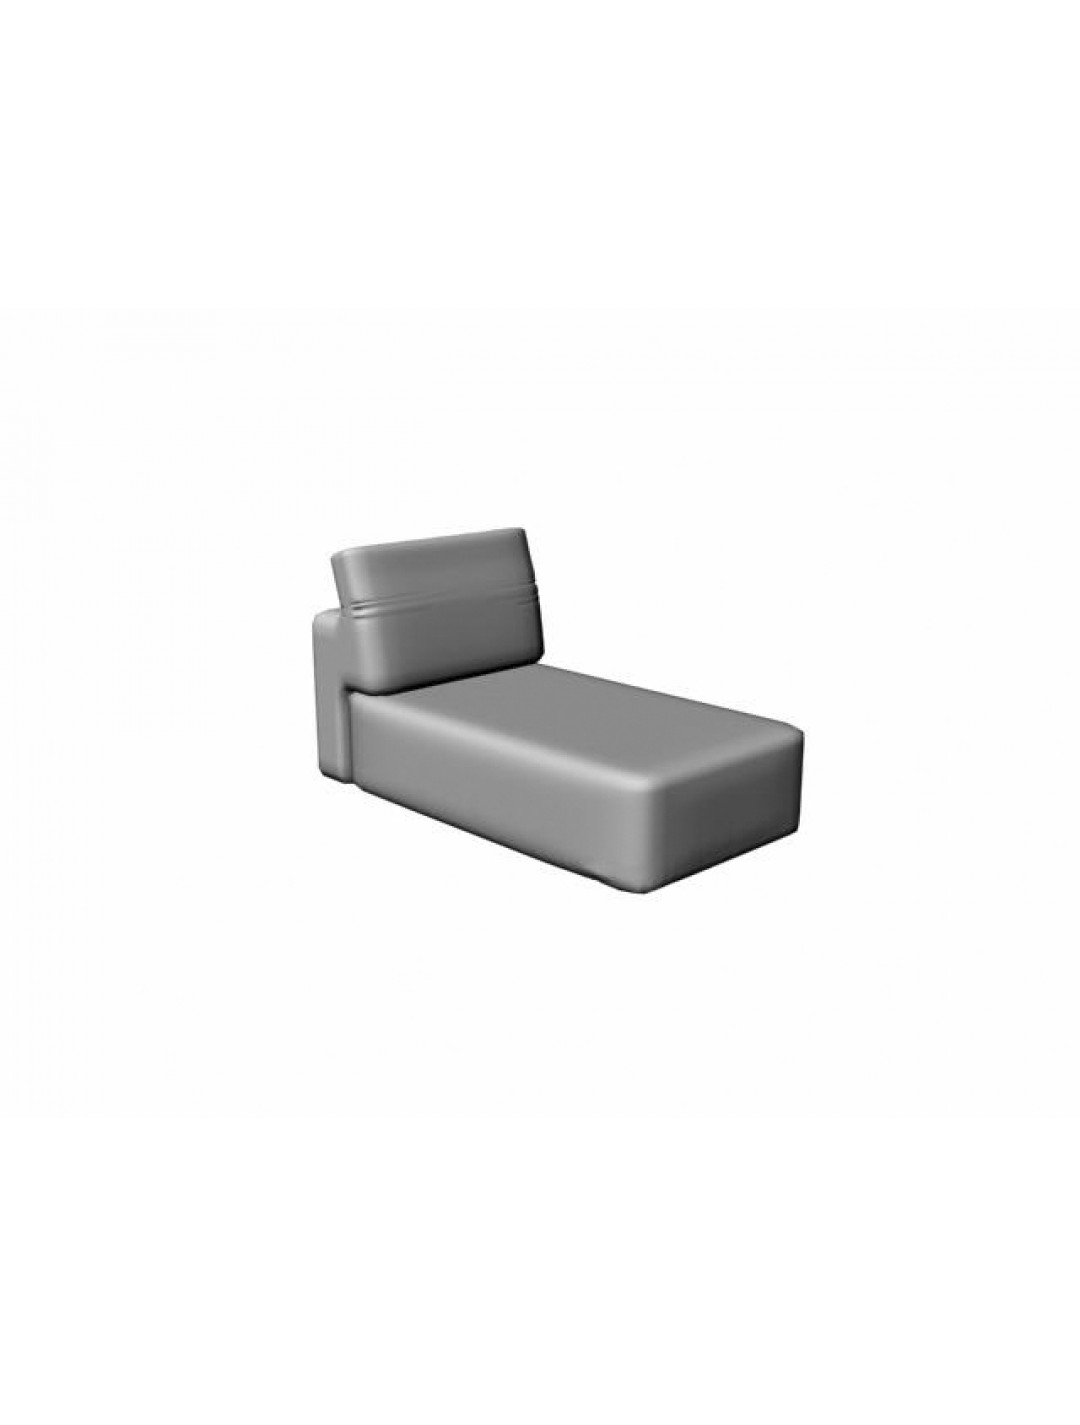 COSMOPOL CHAISE WITHOUT ARMS, C.O.M.